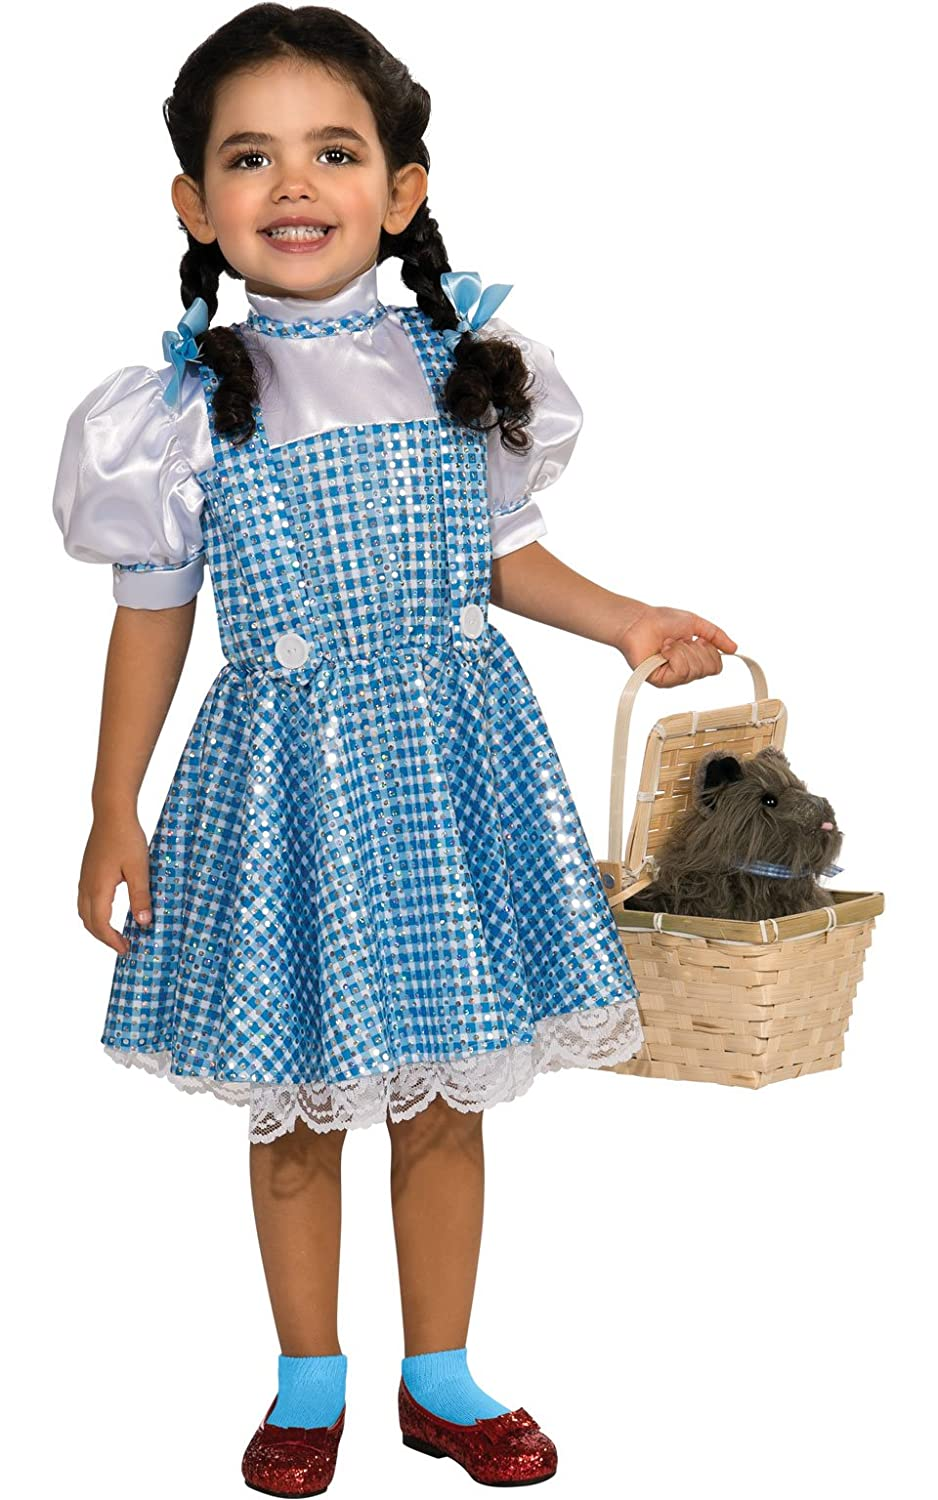 Rubies Costume Co (Canada) Wizard of Oz Dorothy Sequin Costume, Large (75th Anniversary Edition) Rubies Toys CA 886493